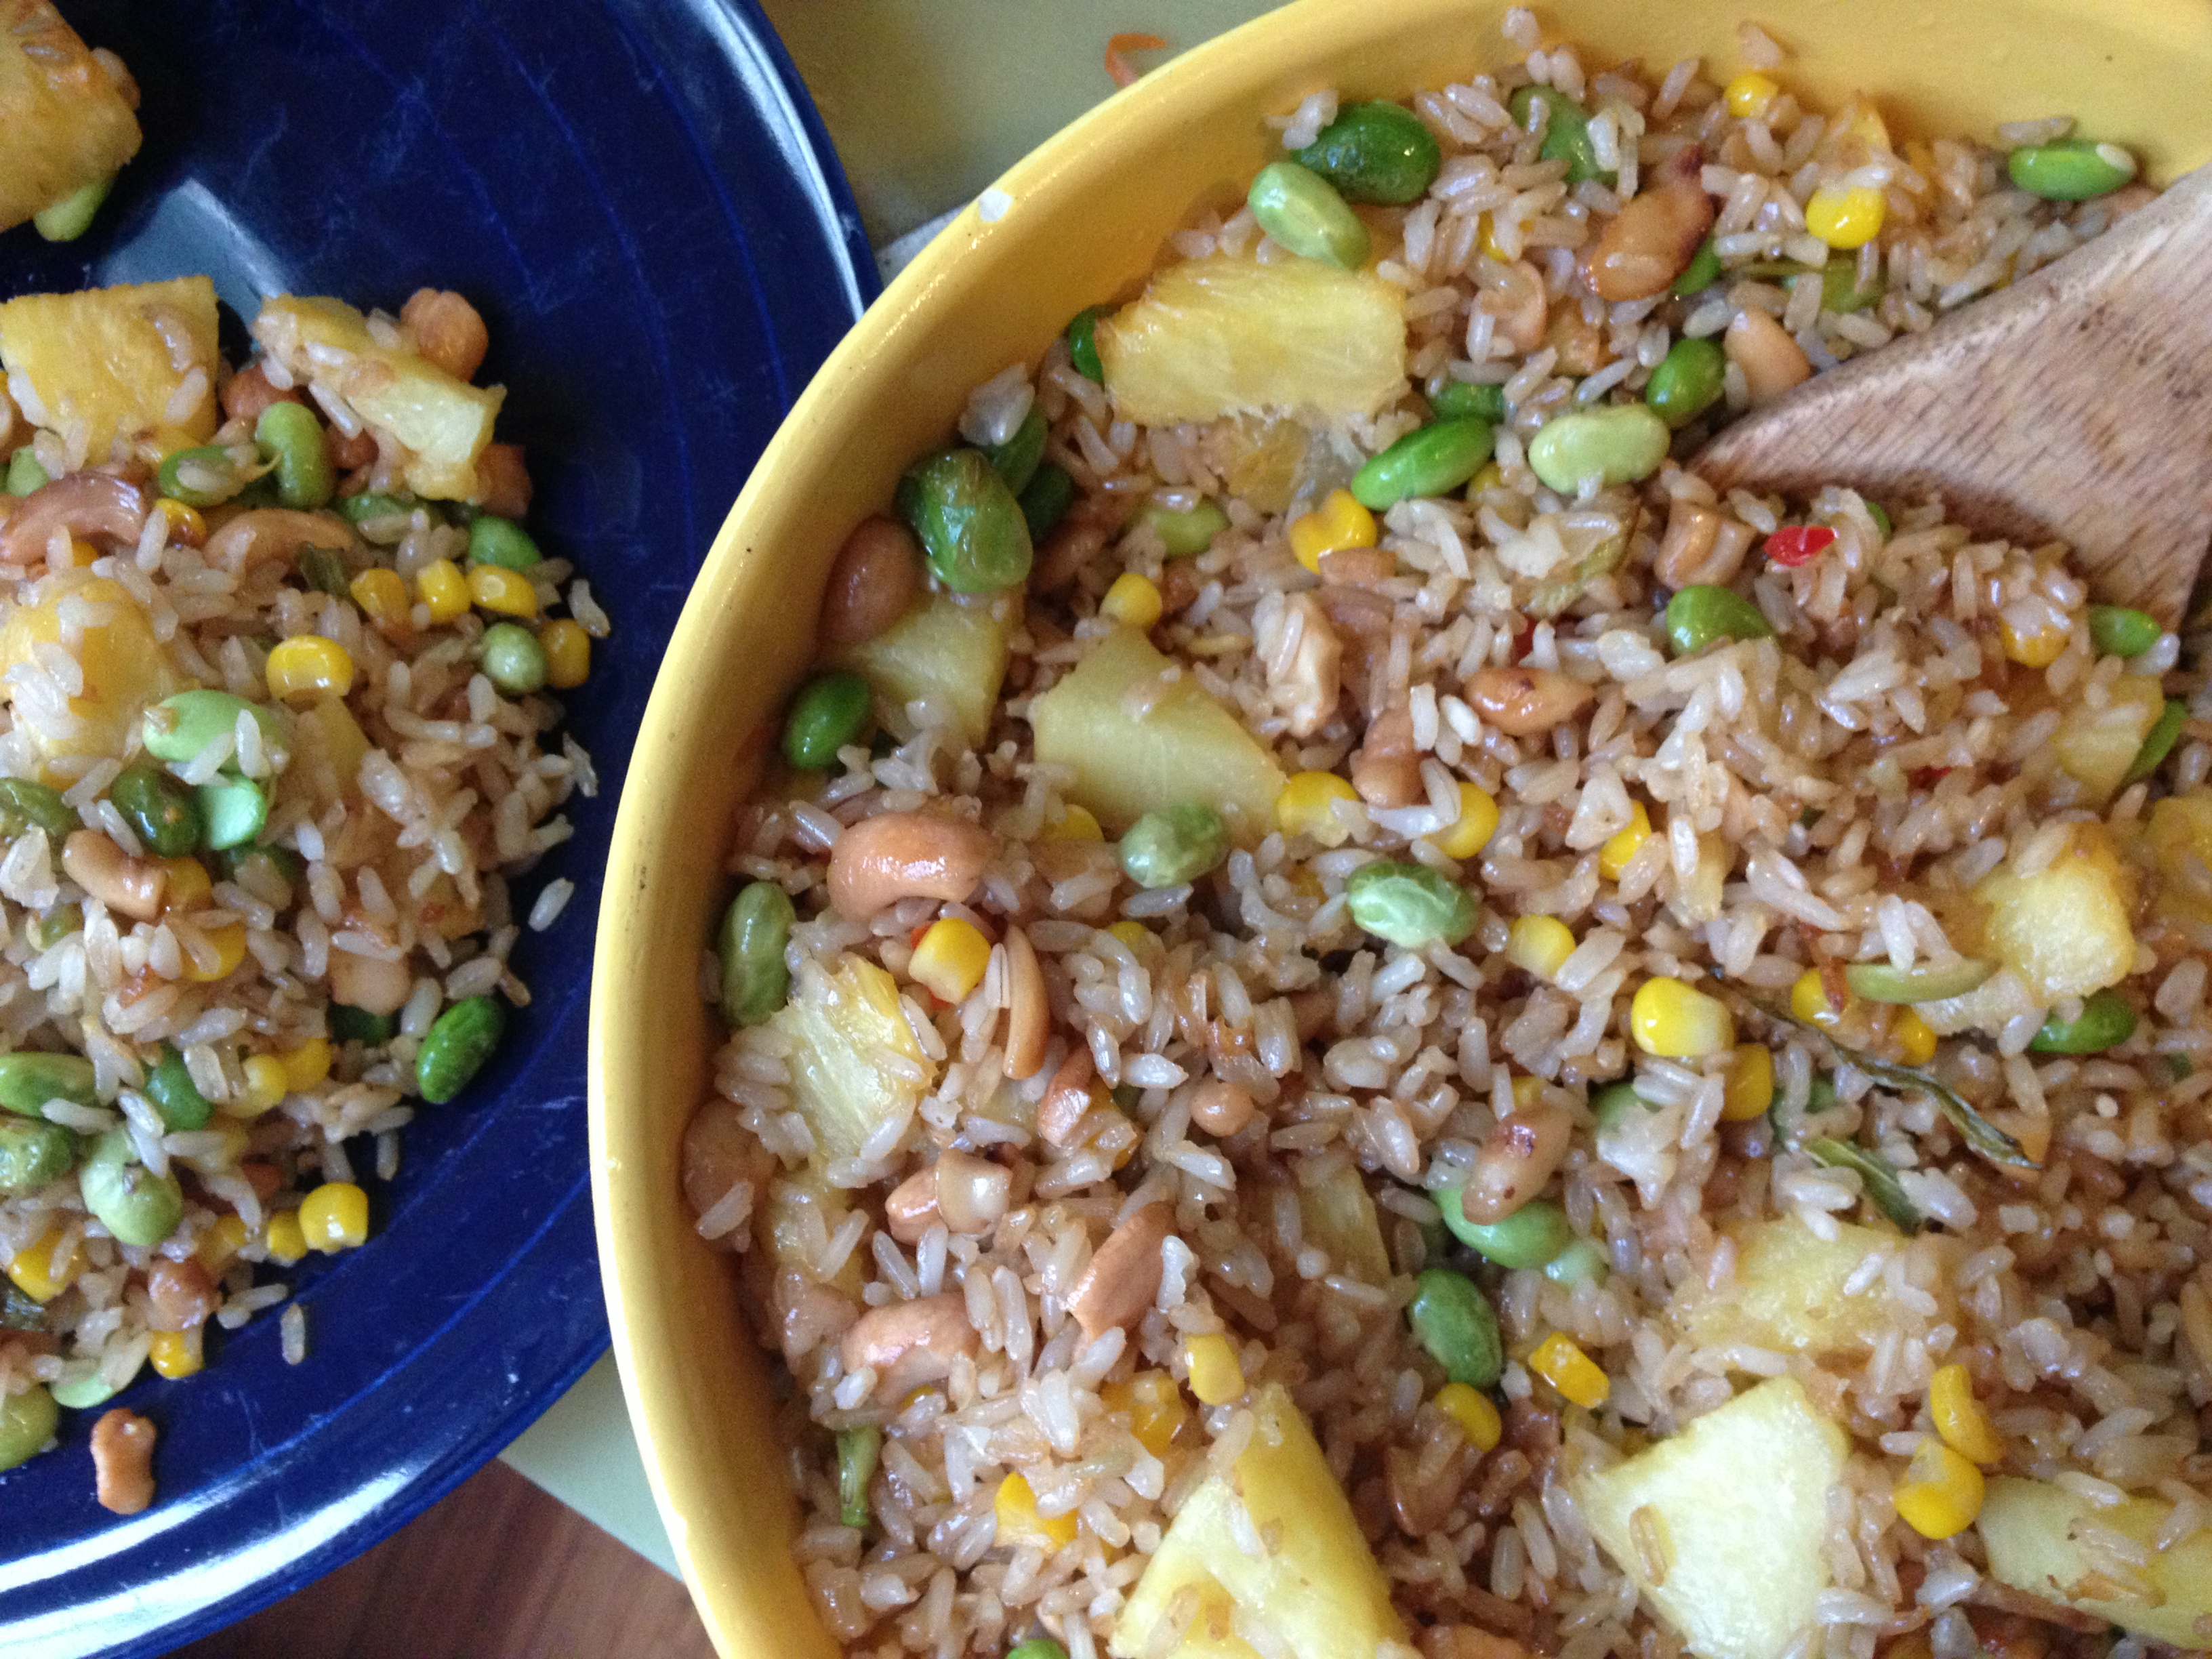 baked rice fried brown rice i six fried rice baked kimchi fried rice ...